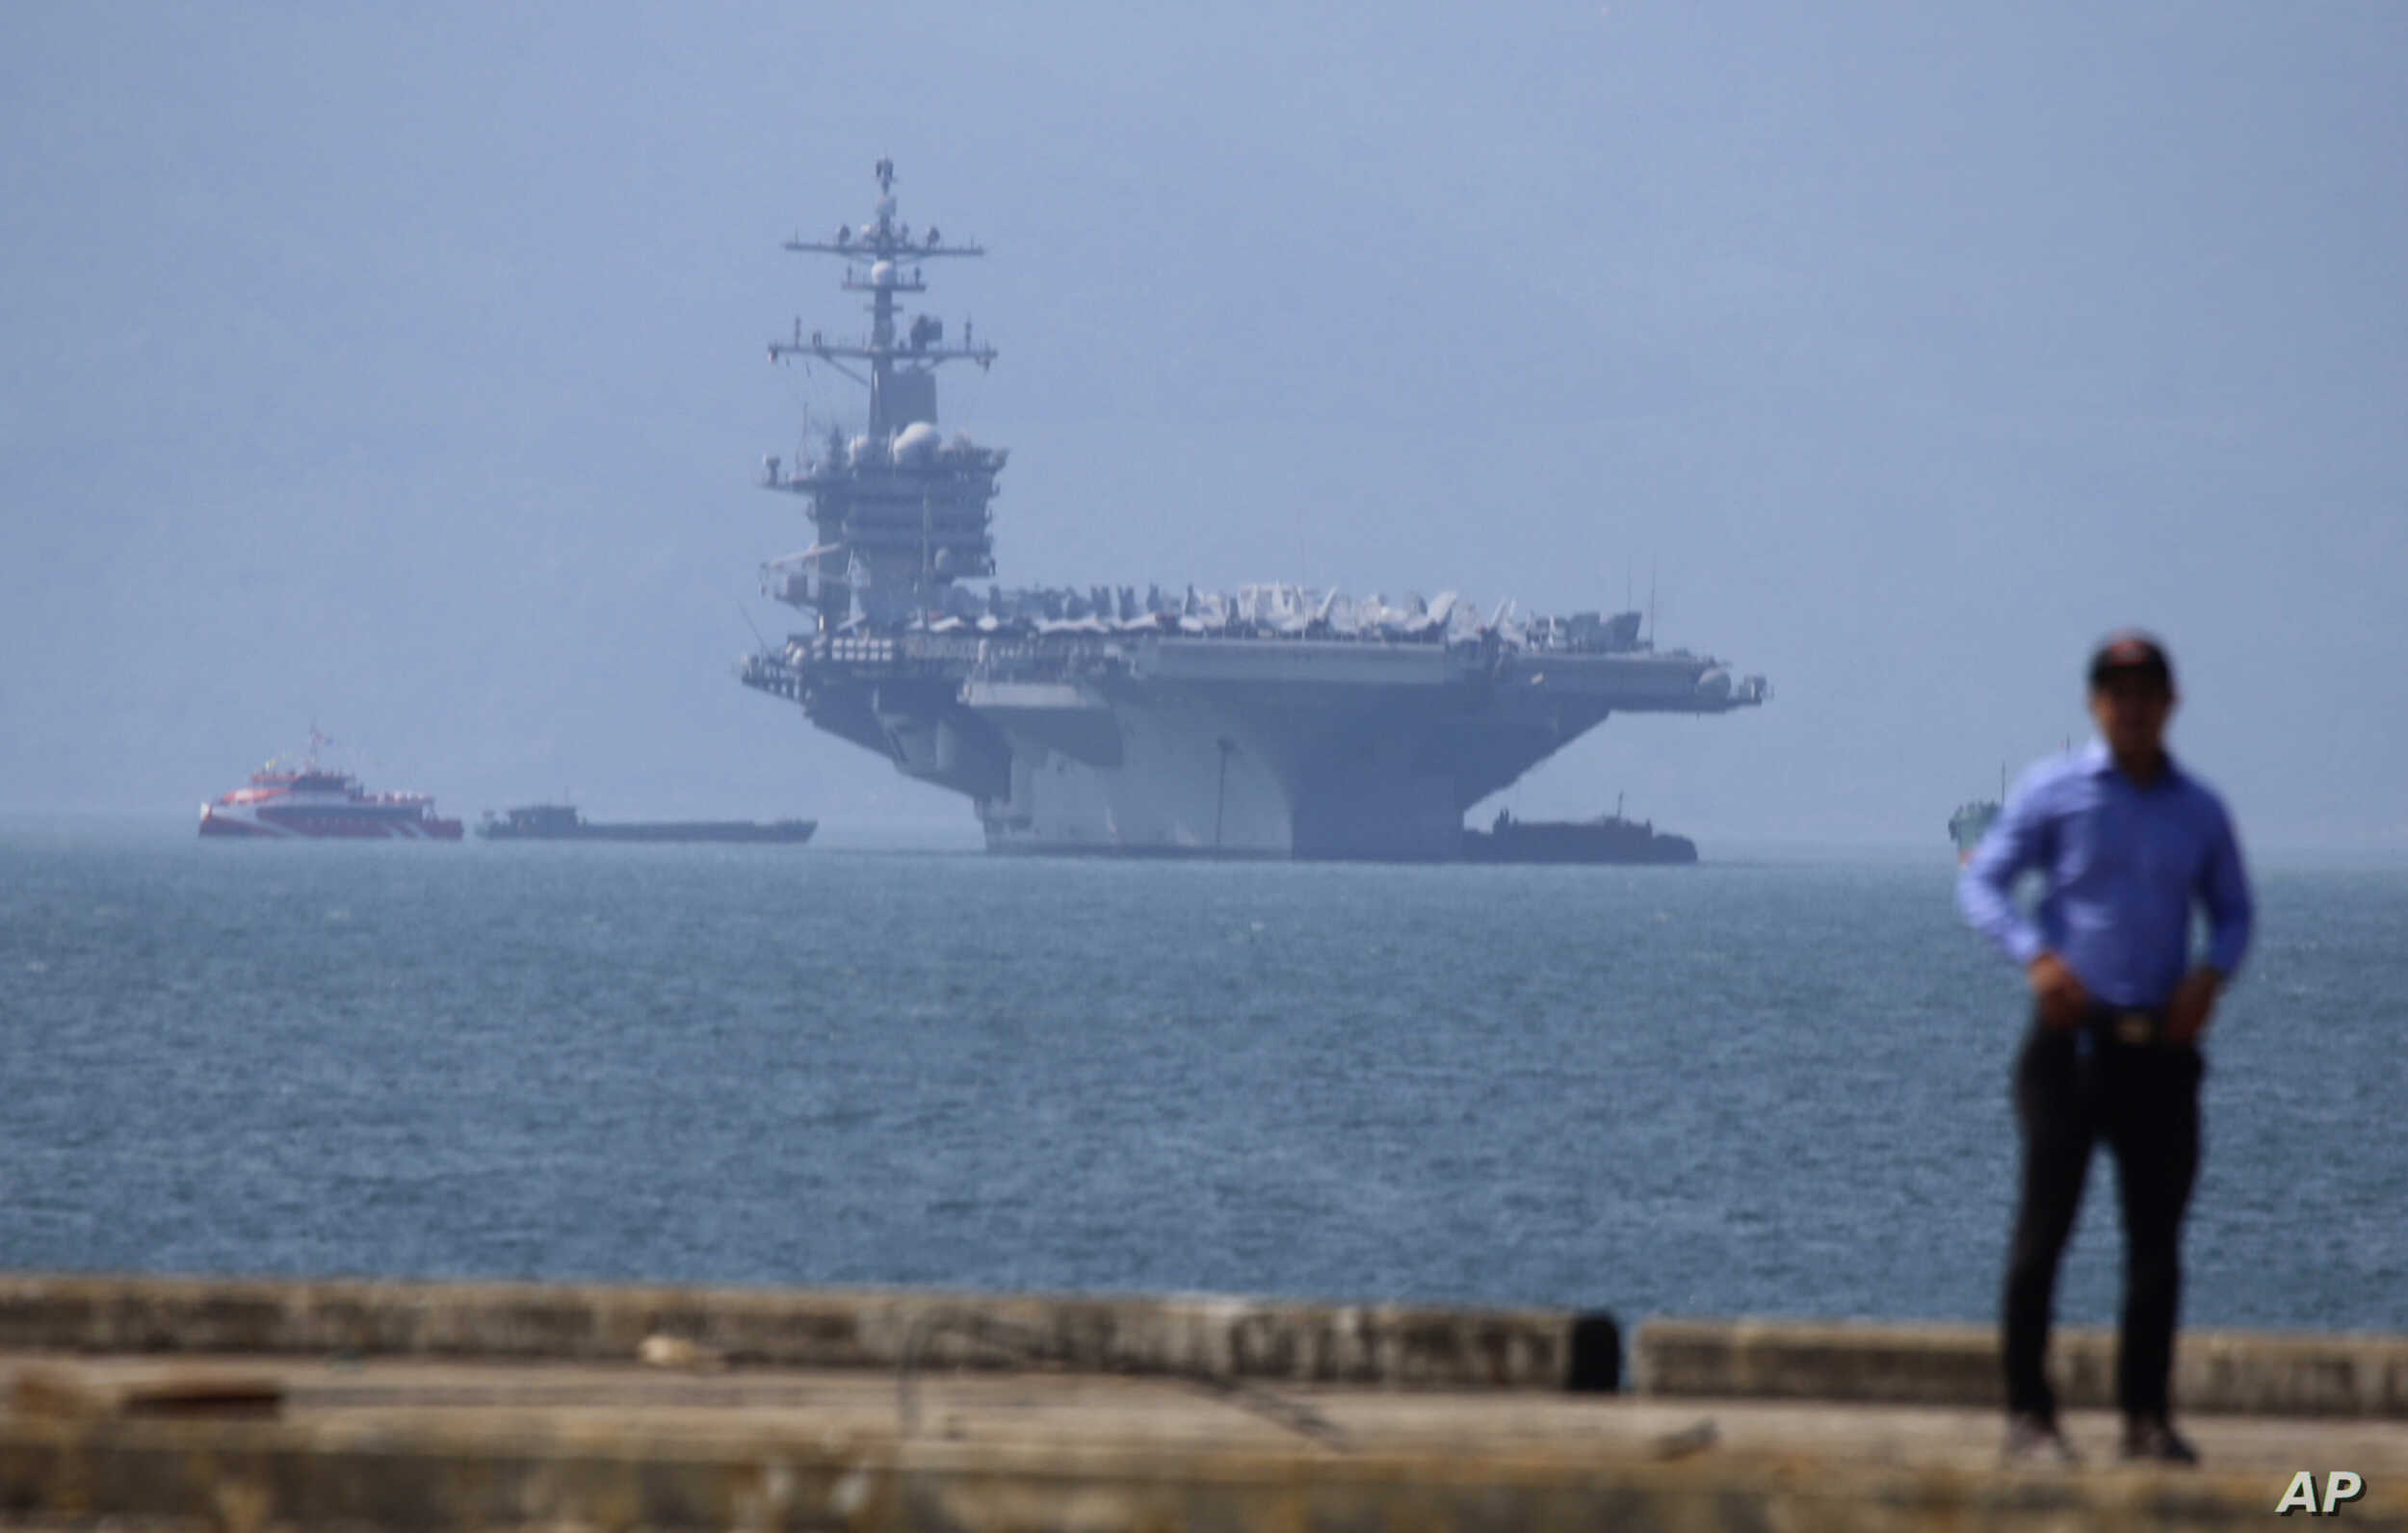 The USS Carl Vinson is anchored at Tien Sa Port in Danang, Vietnam, March 5, 2018.